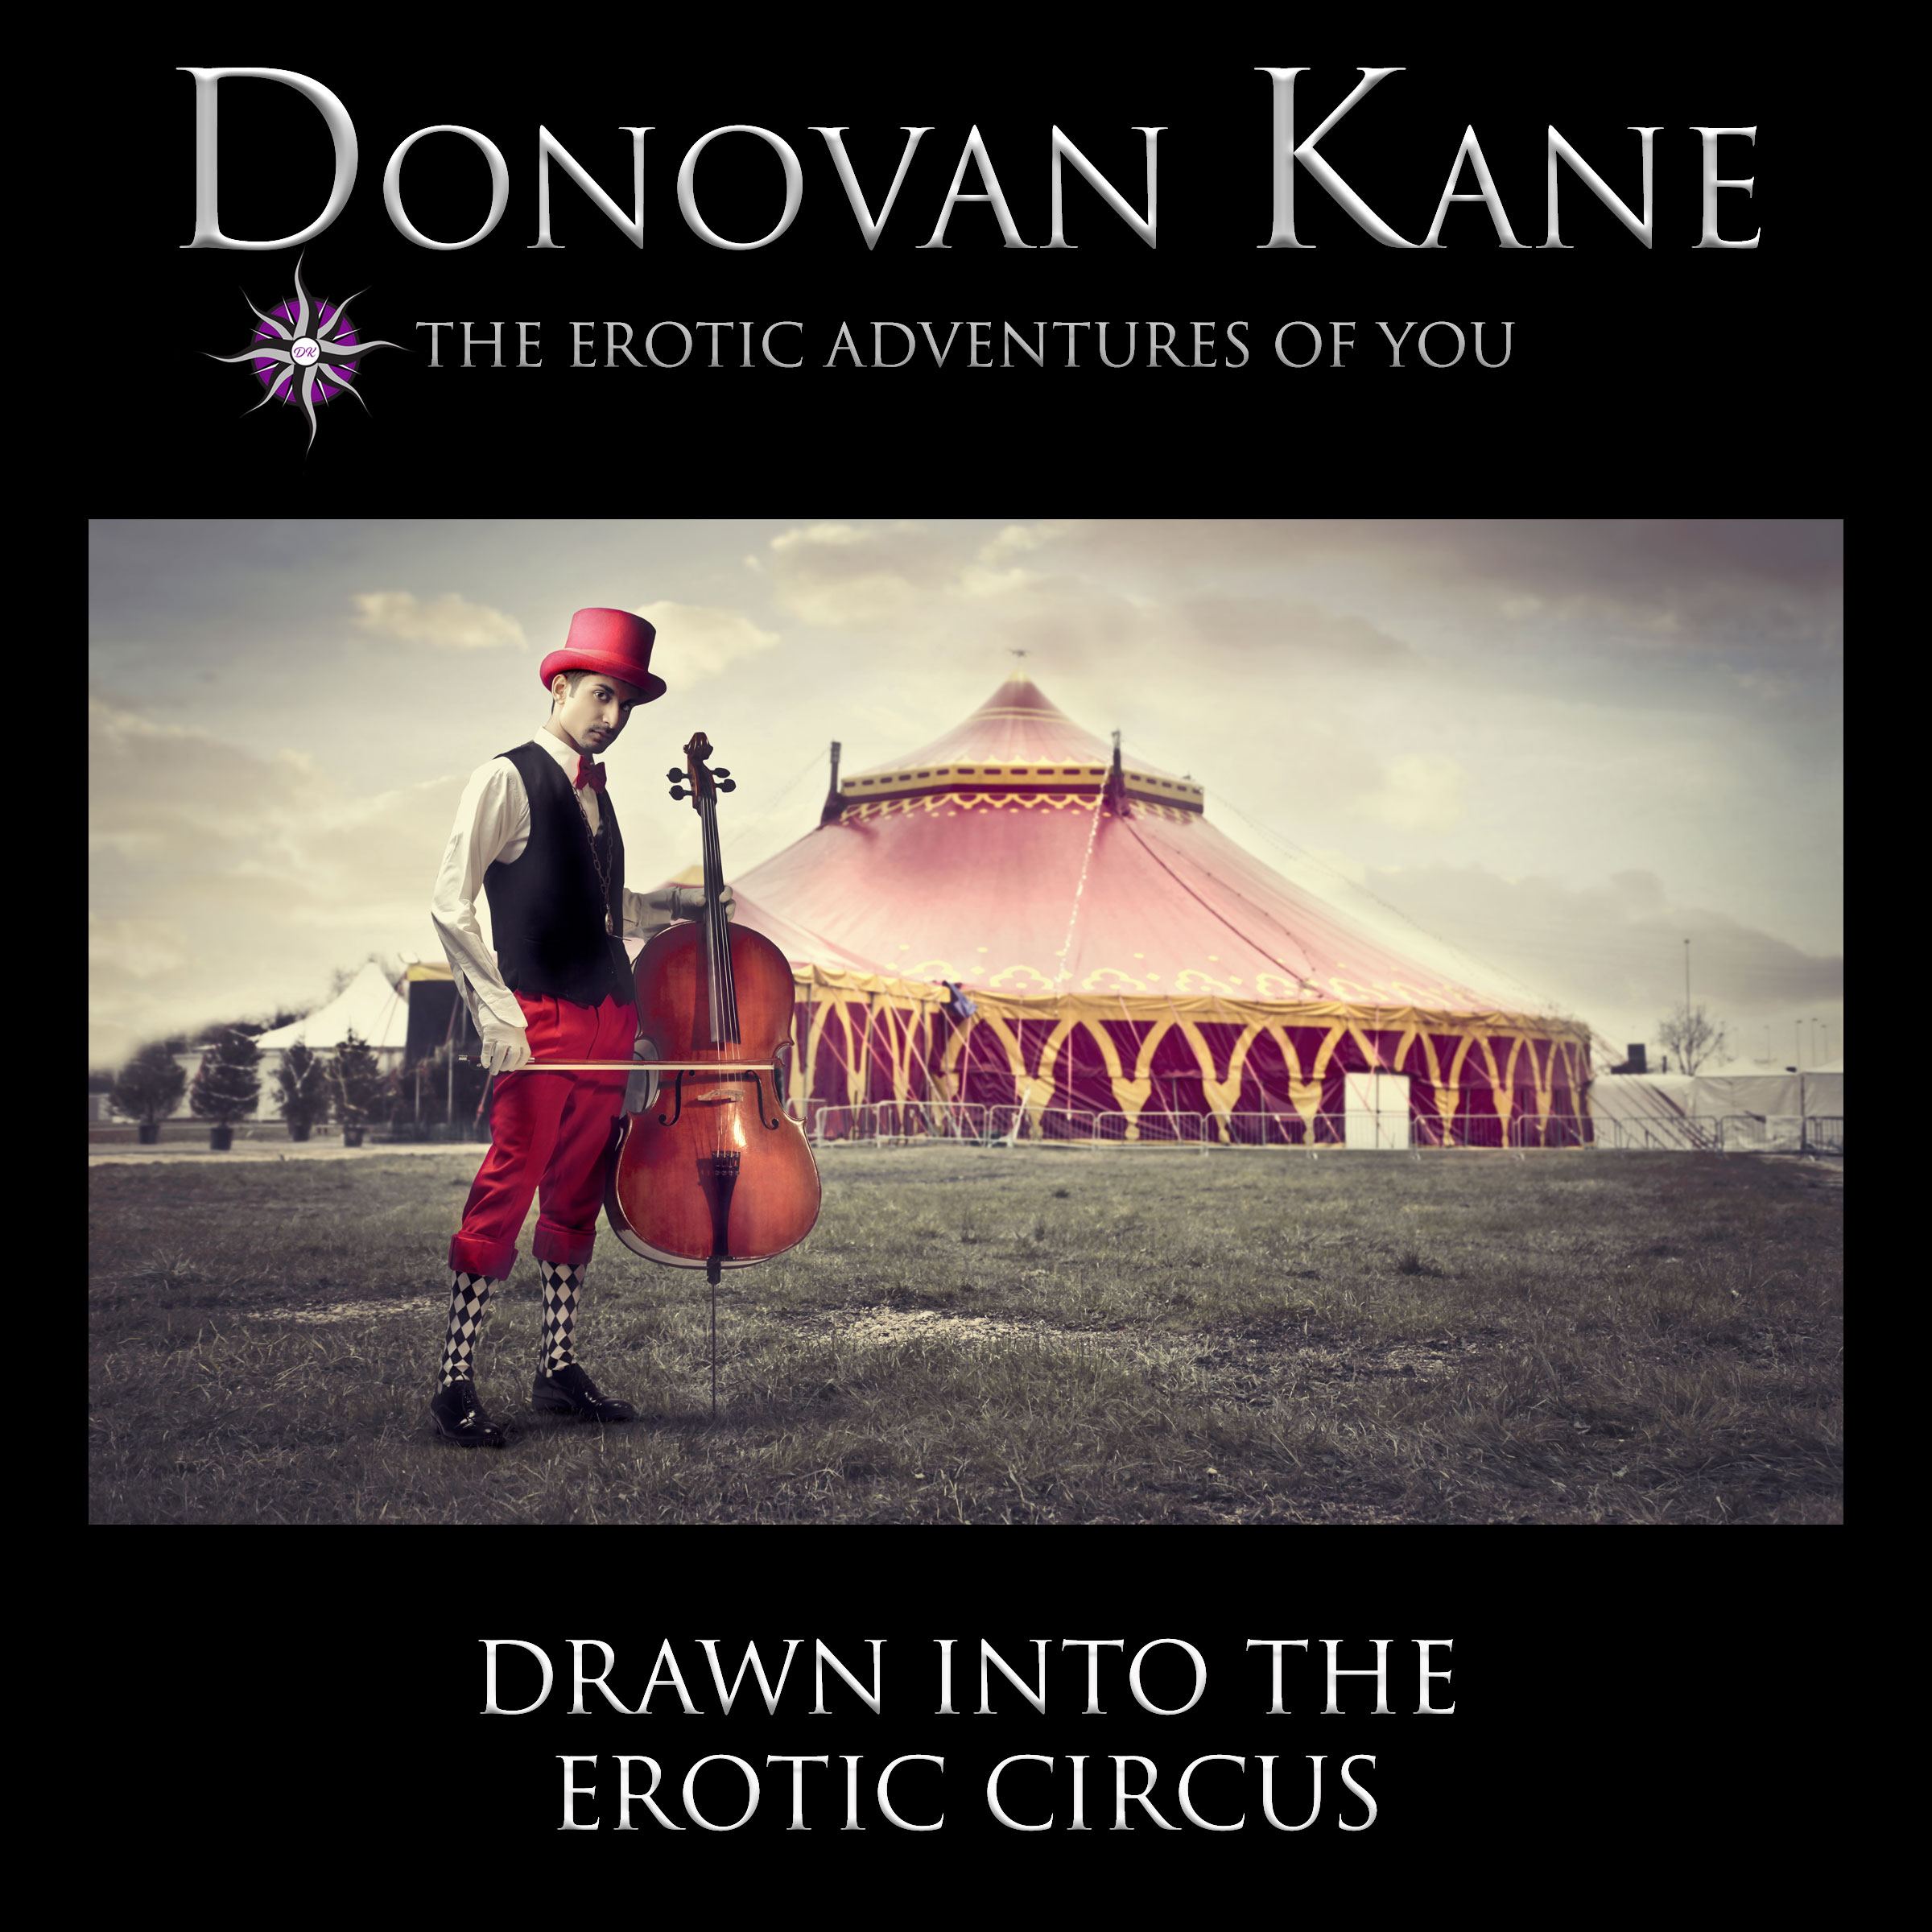 Drawn Into the Erotic Circus: The Erotic Adventures of You